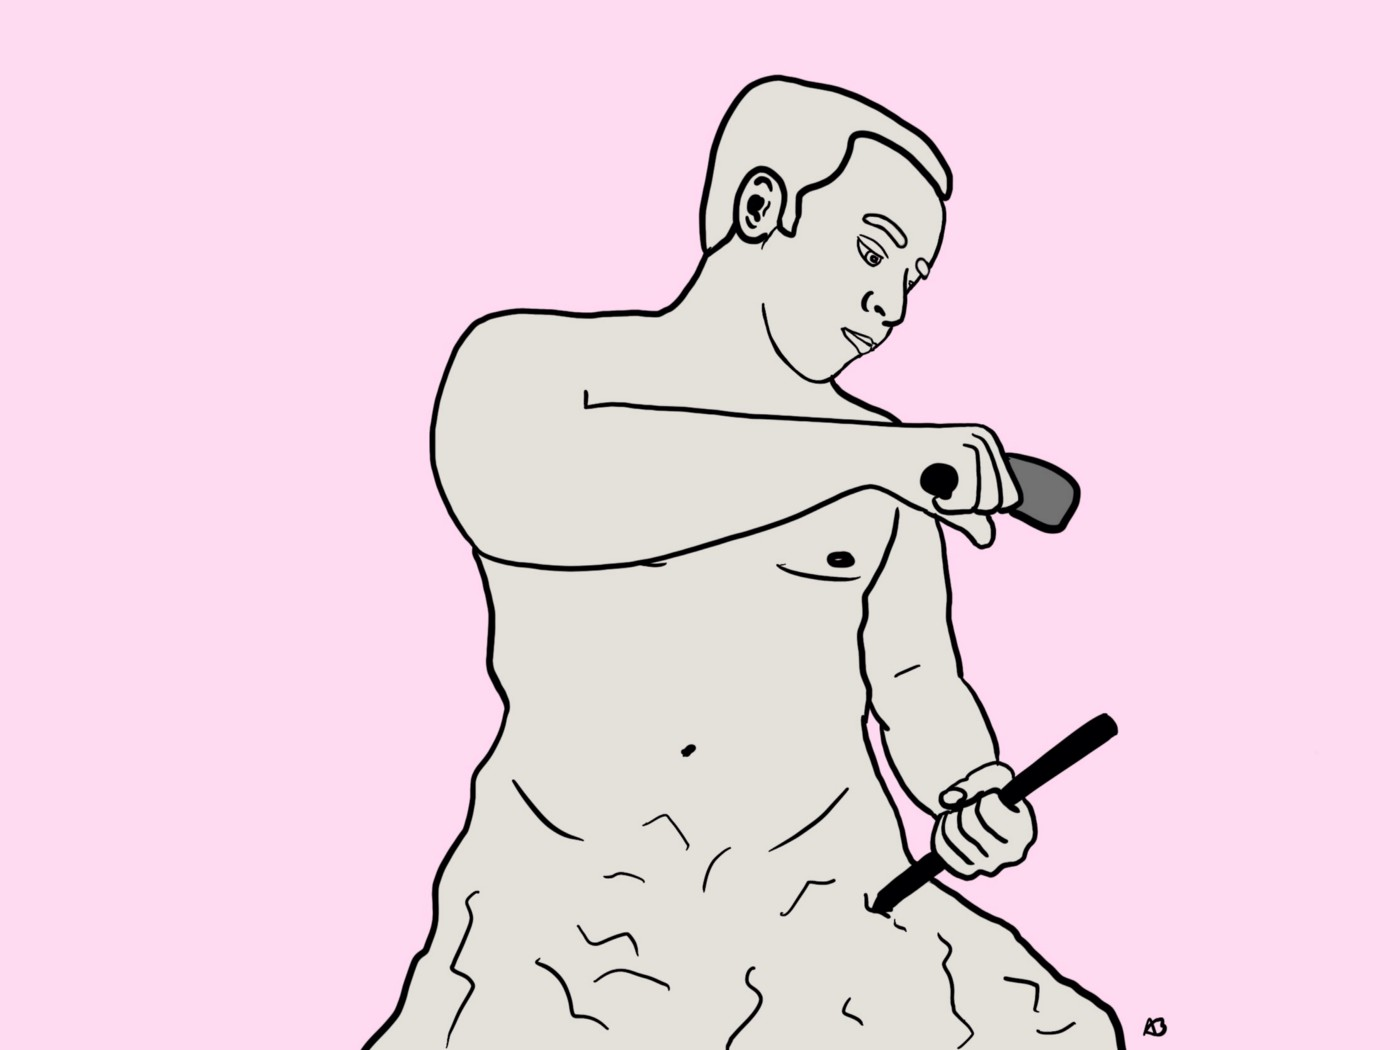 Illustration of author sculpting himself from rock.